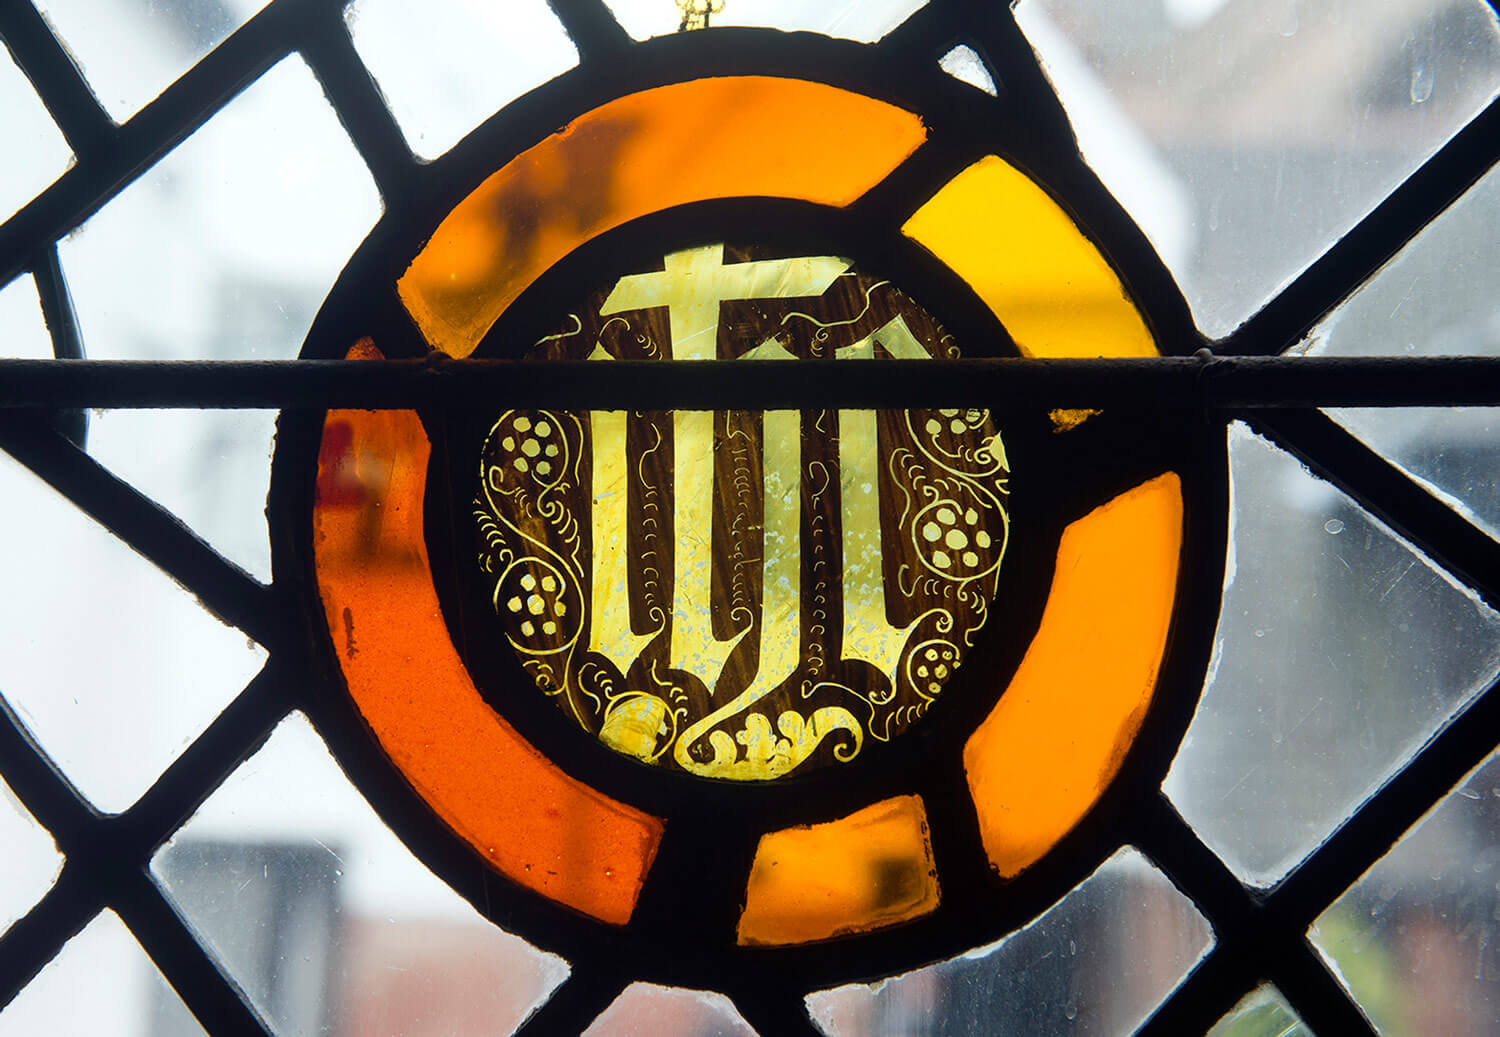 Painted glass on display at Leicester Guildhall -